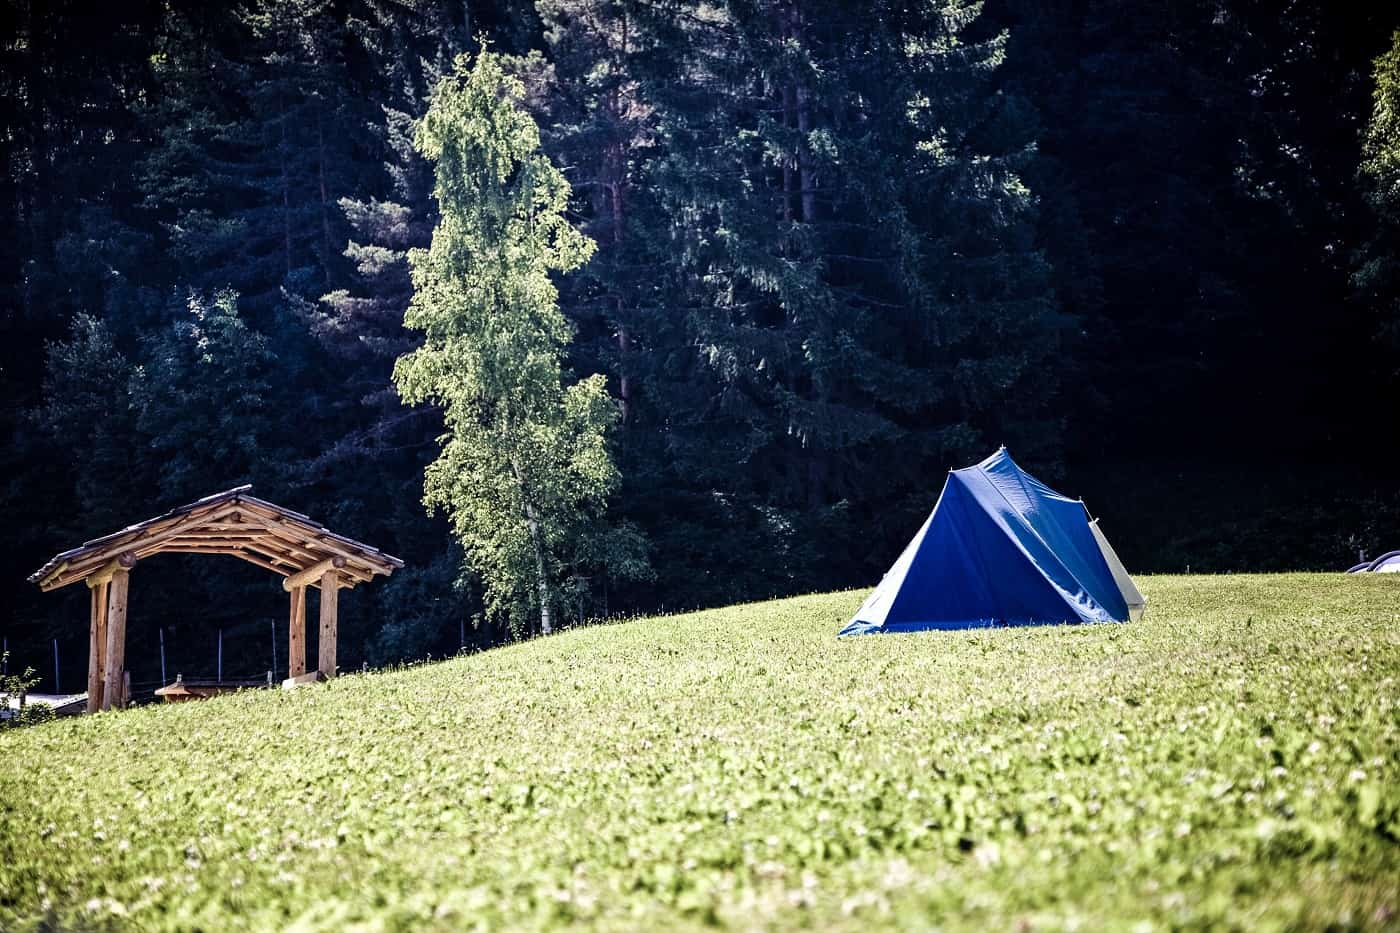 Blue camping tarp in grass - The silence of going solo